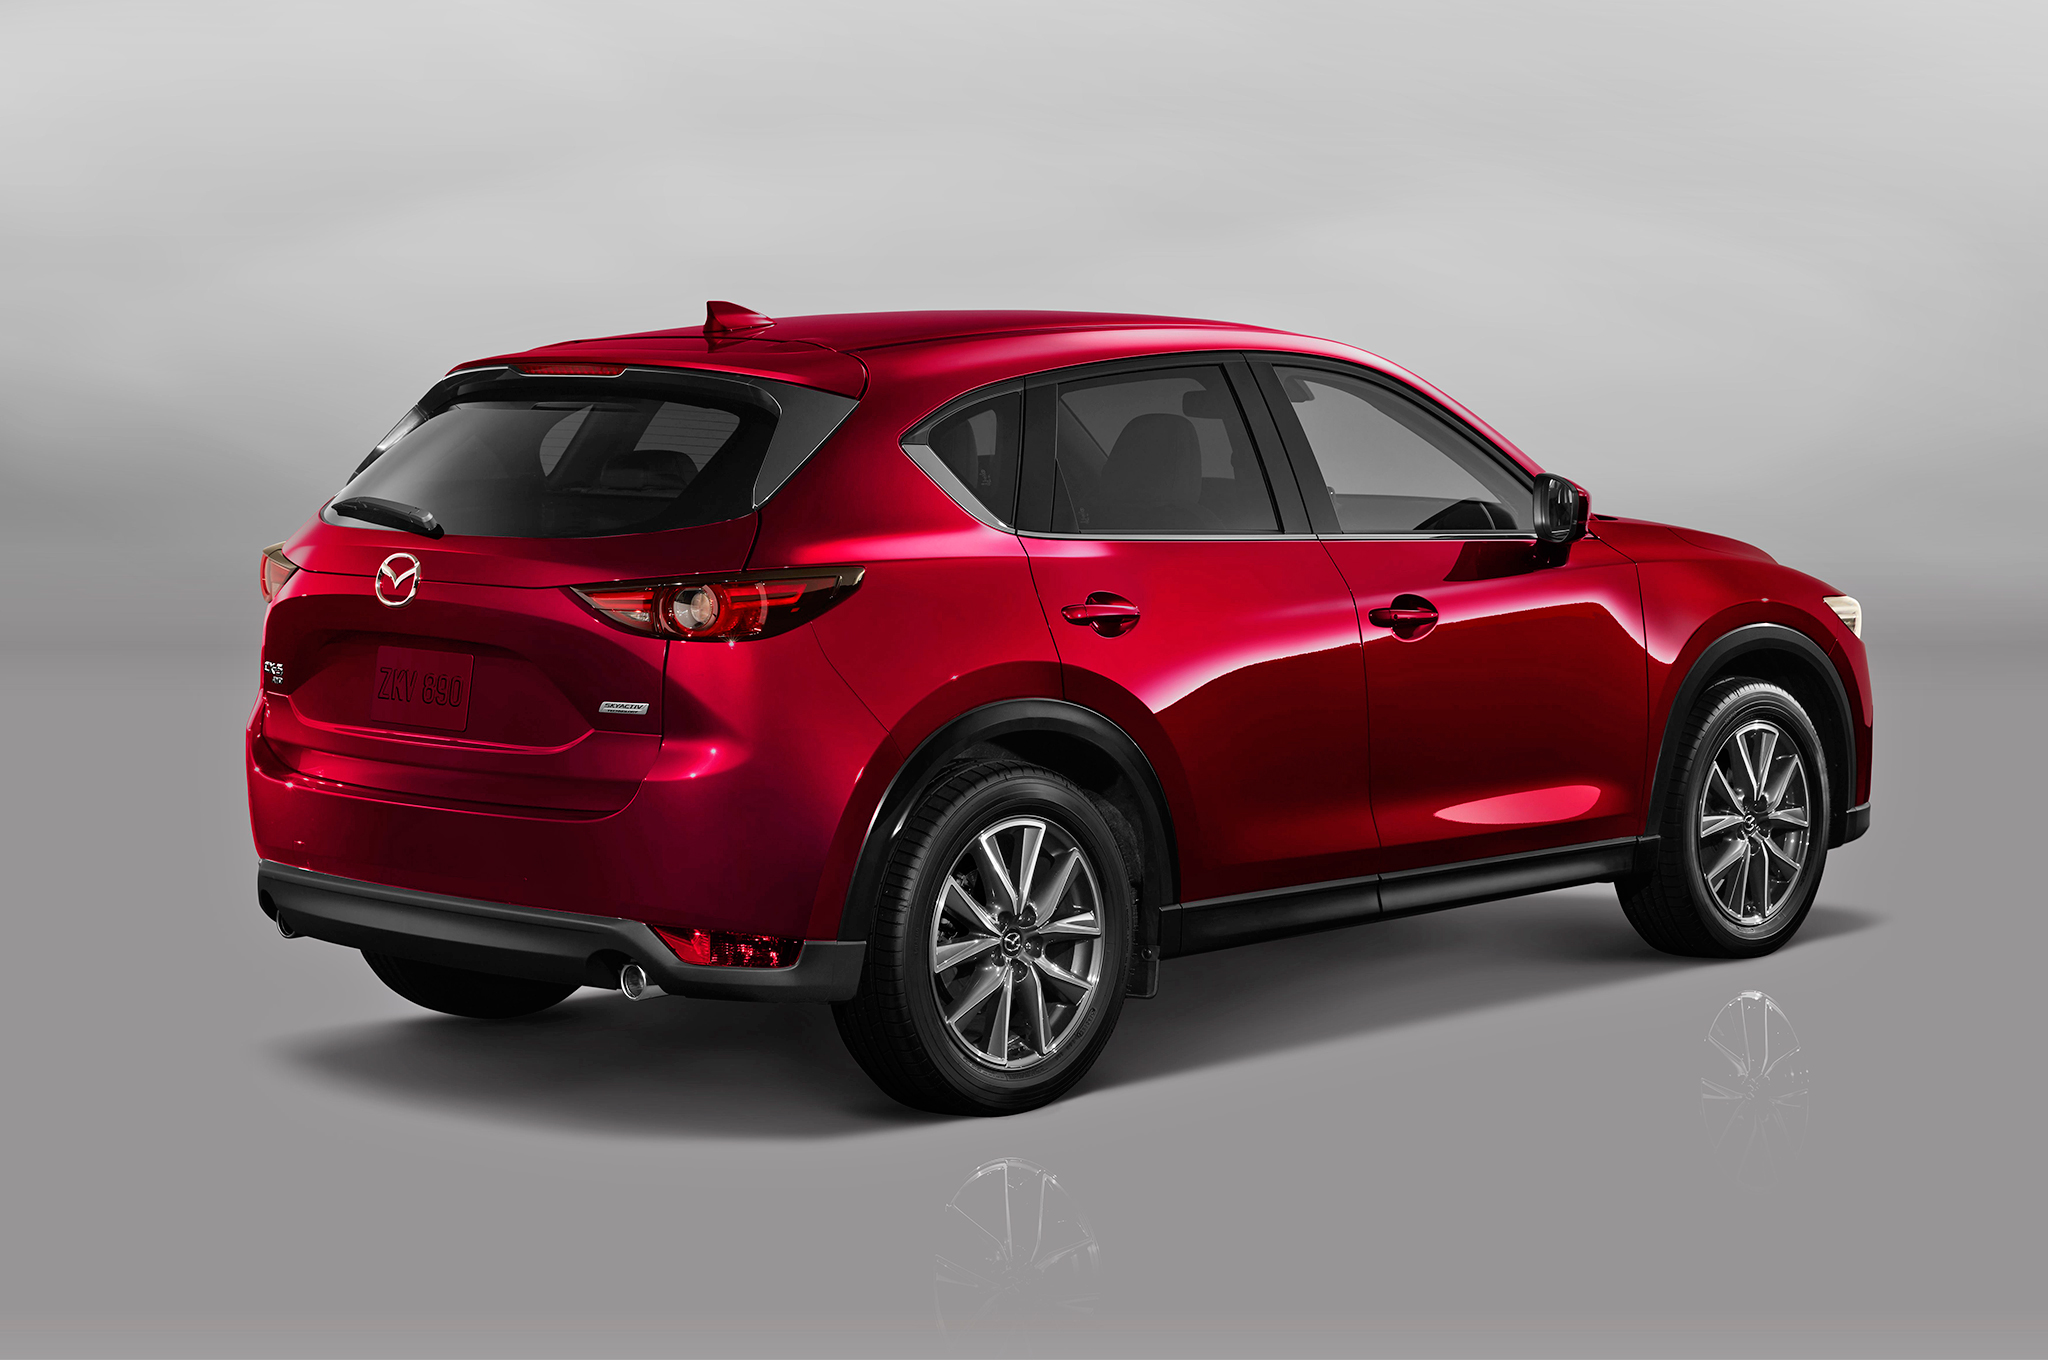 2017-mazda-cx-5-rear-three-quarter